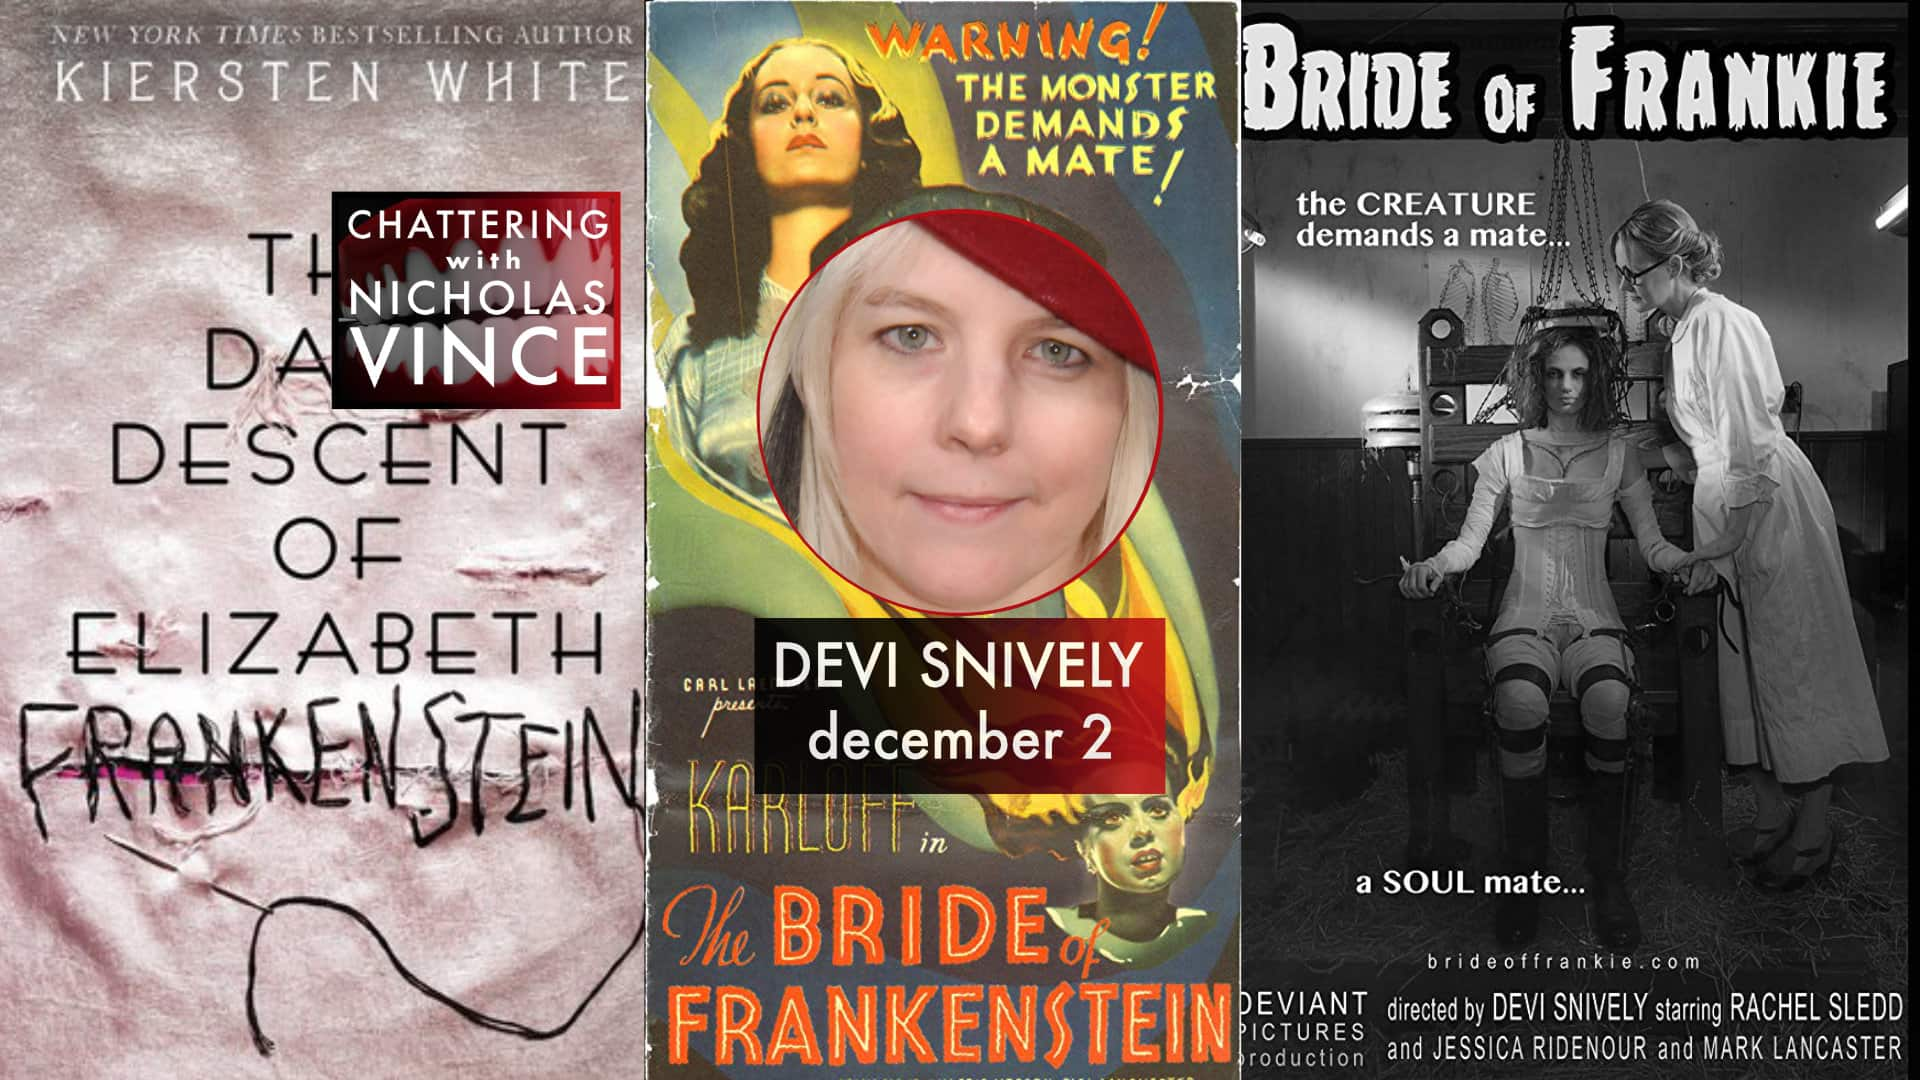 Chattering with Devi Snively